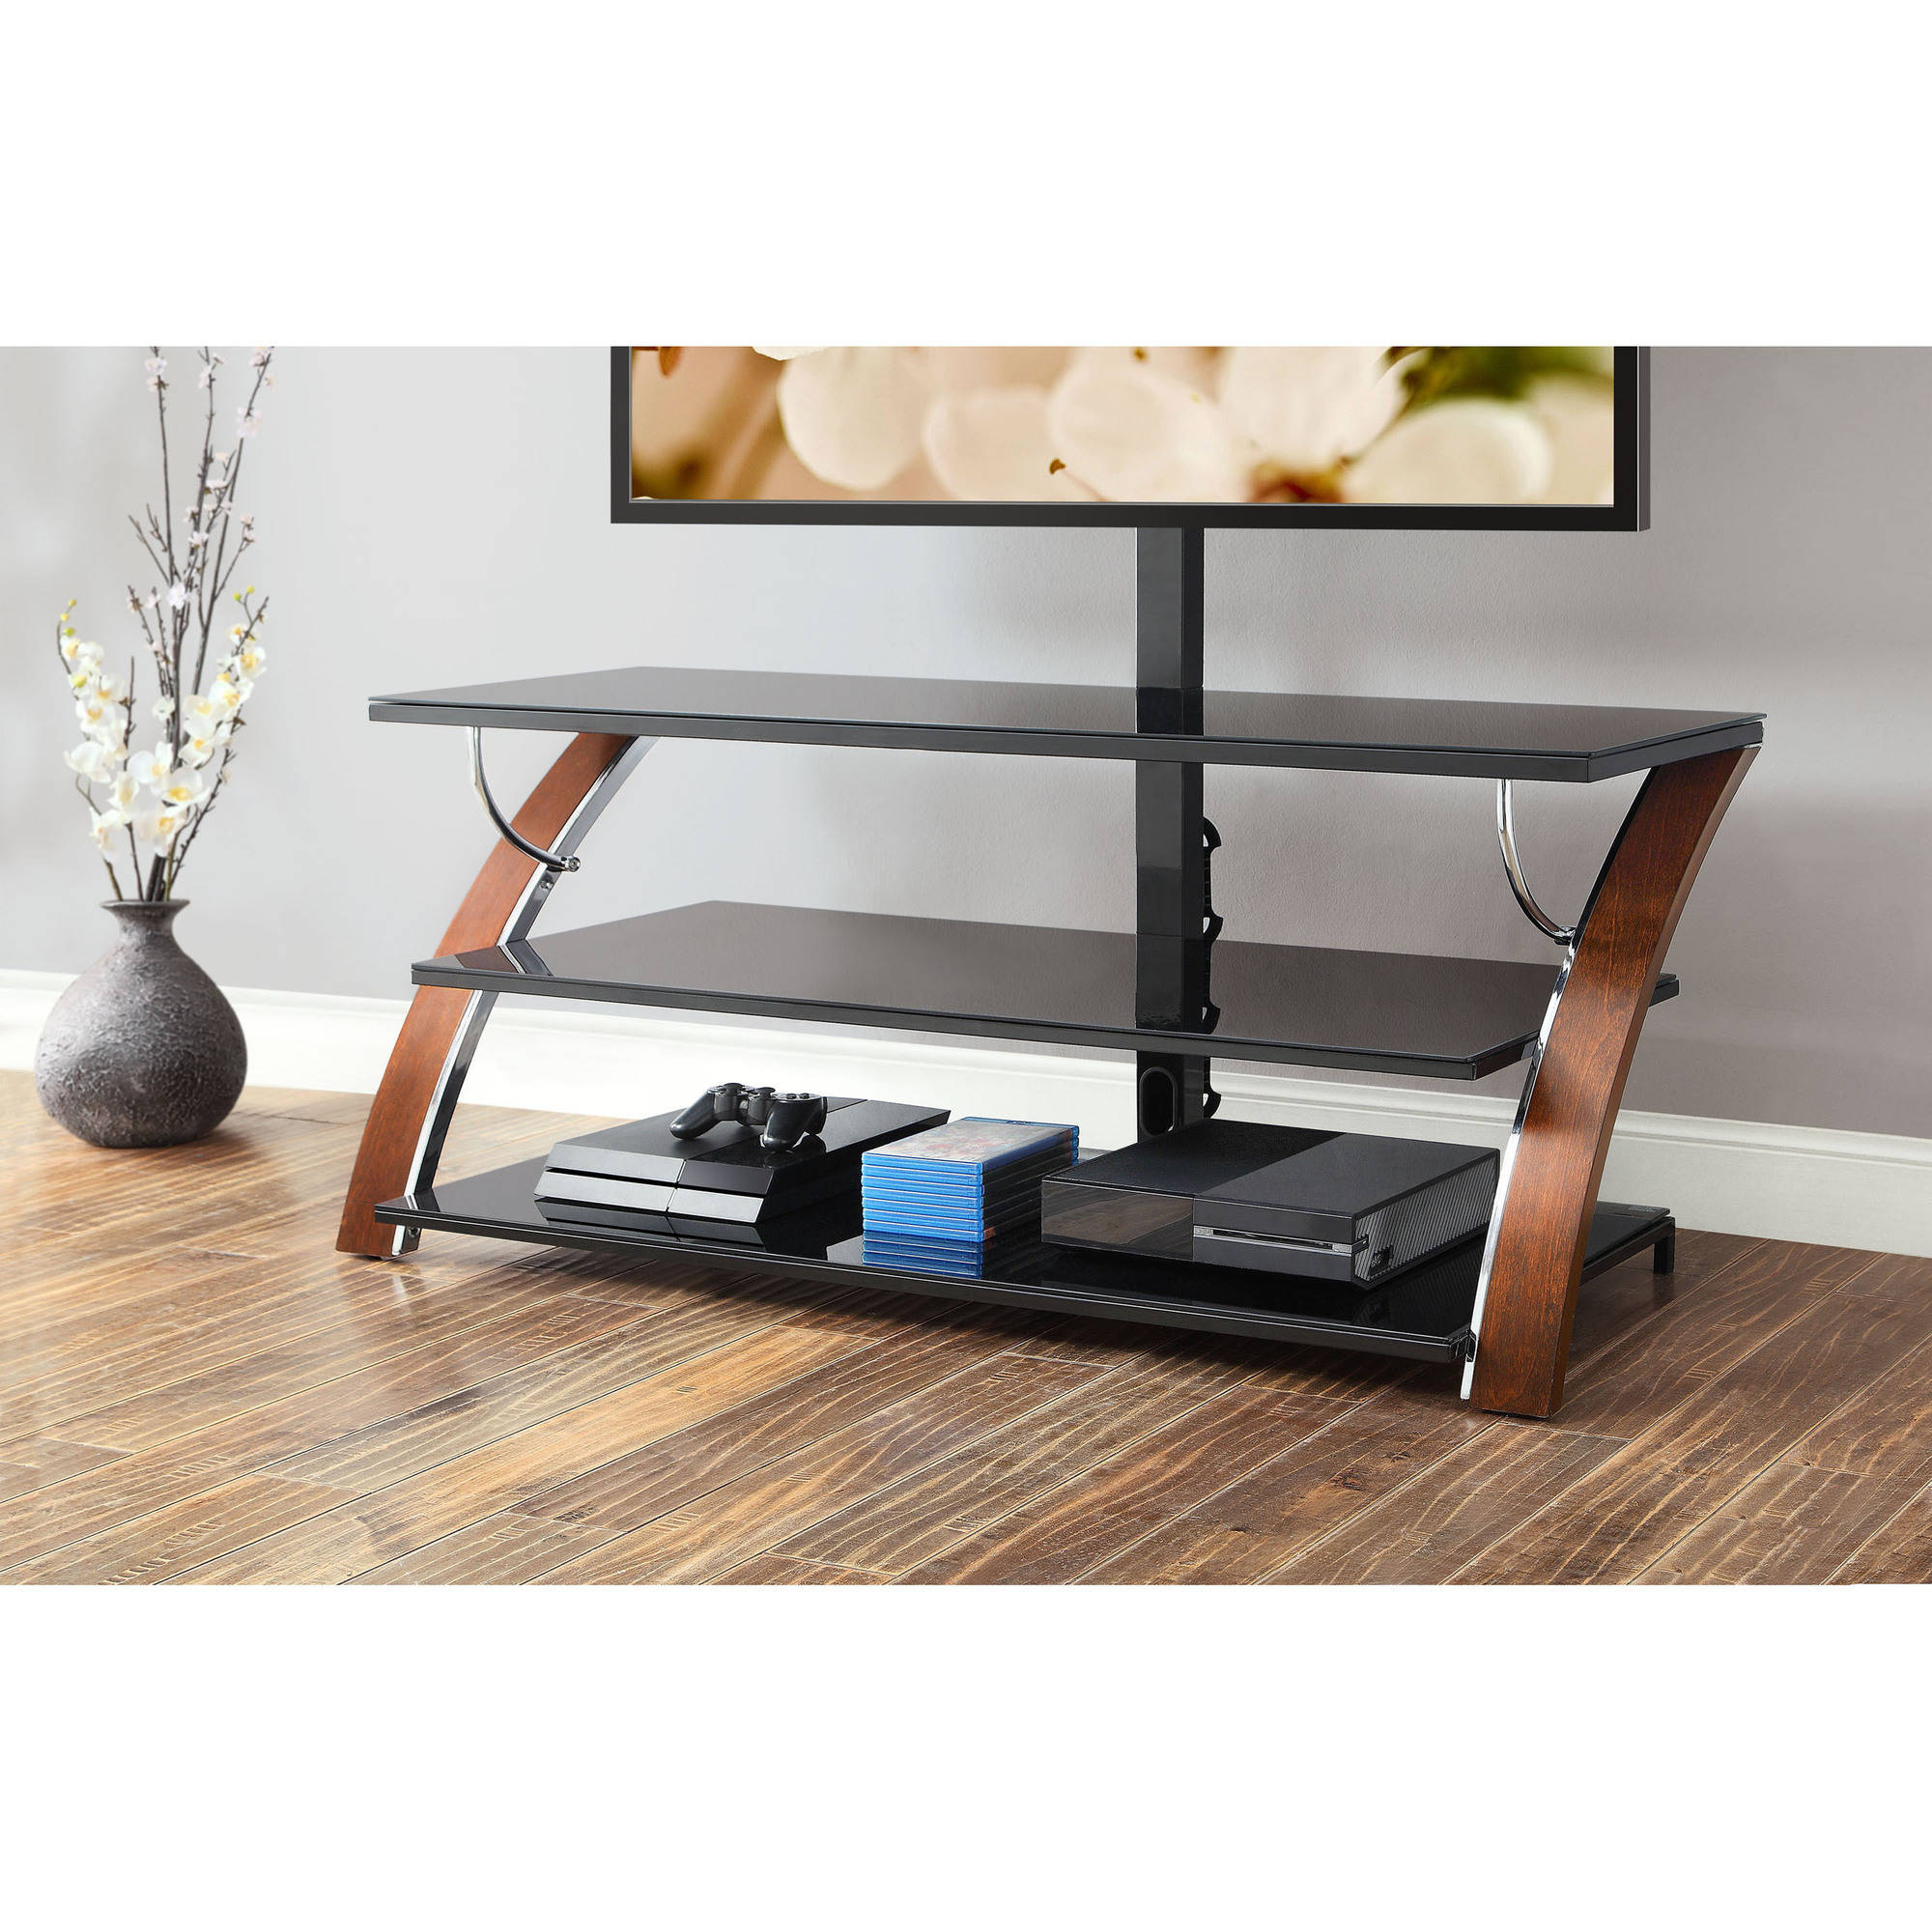 Comfy whalen tv stand for furniture accessories design with whalen 3-in-1 tv stand